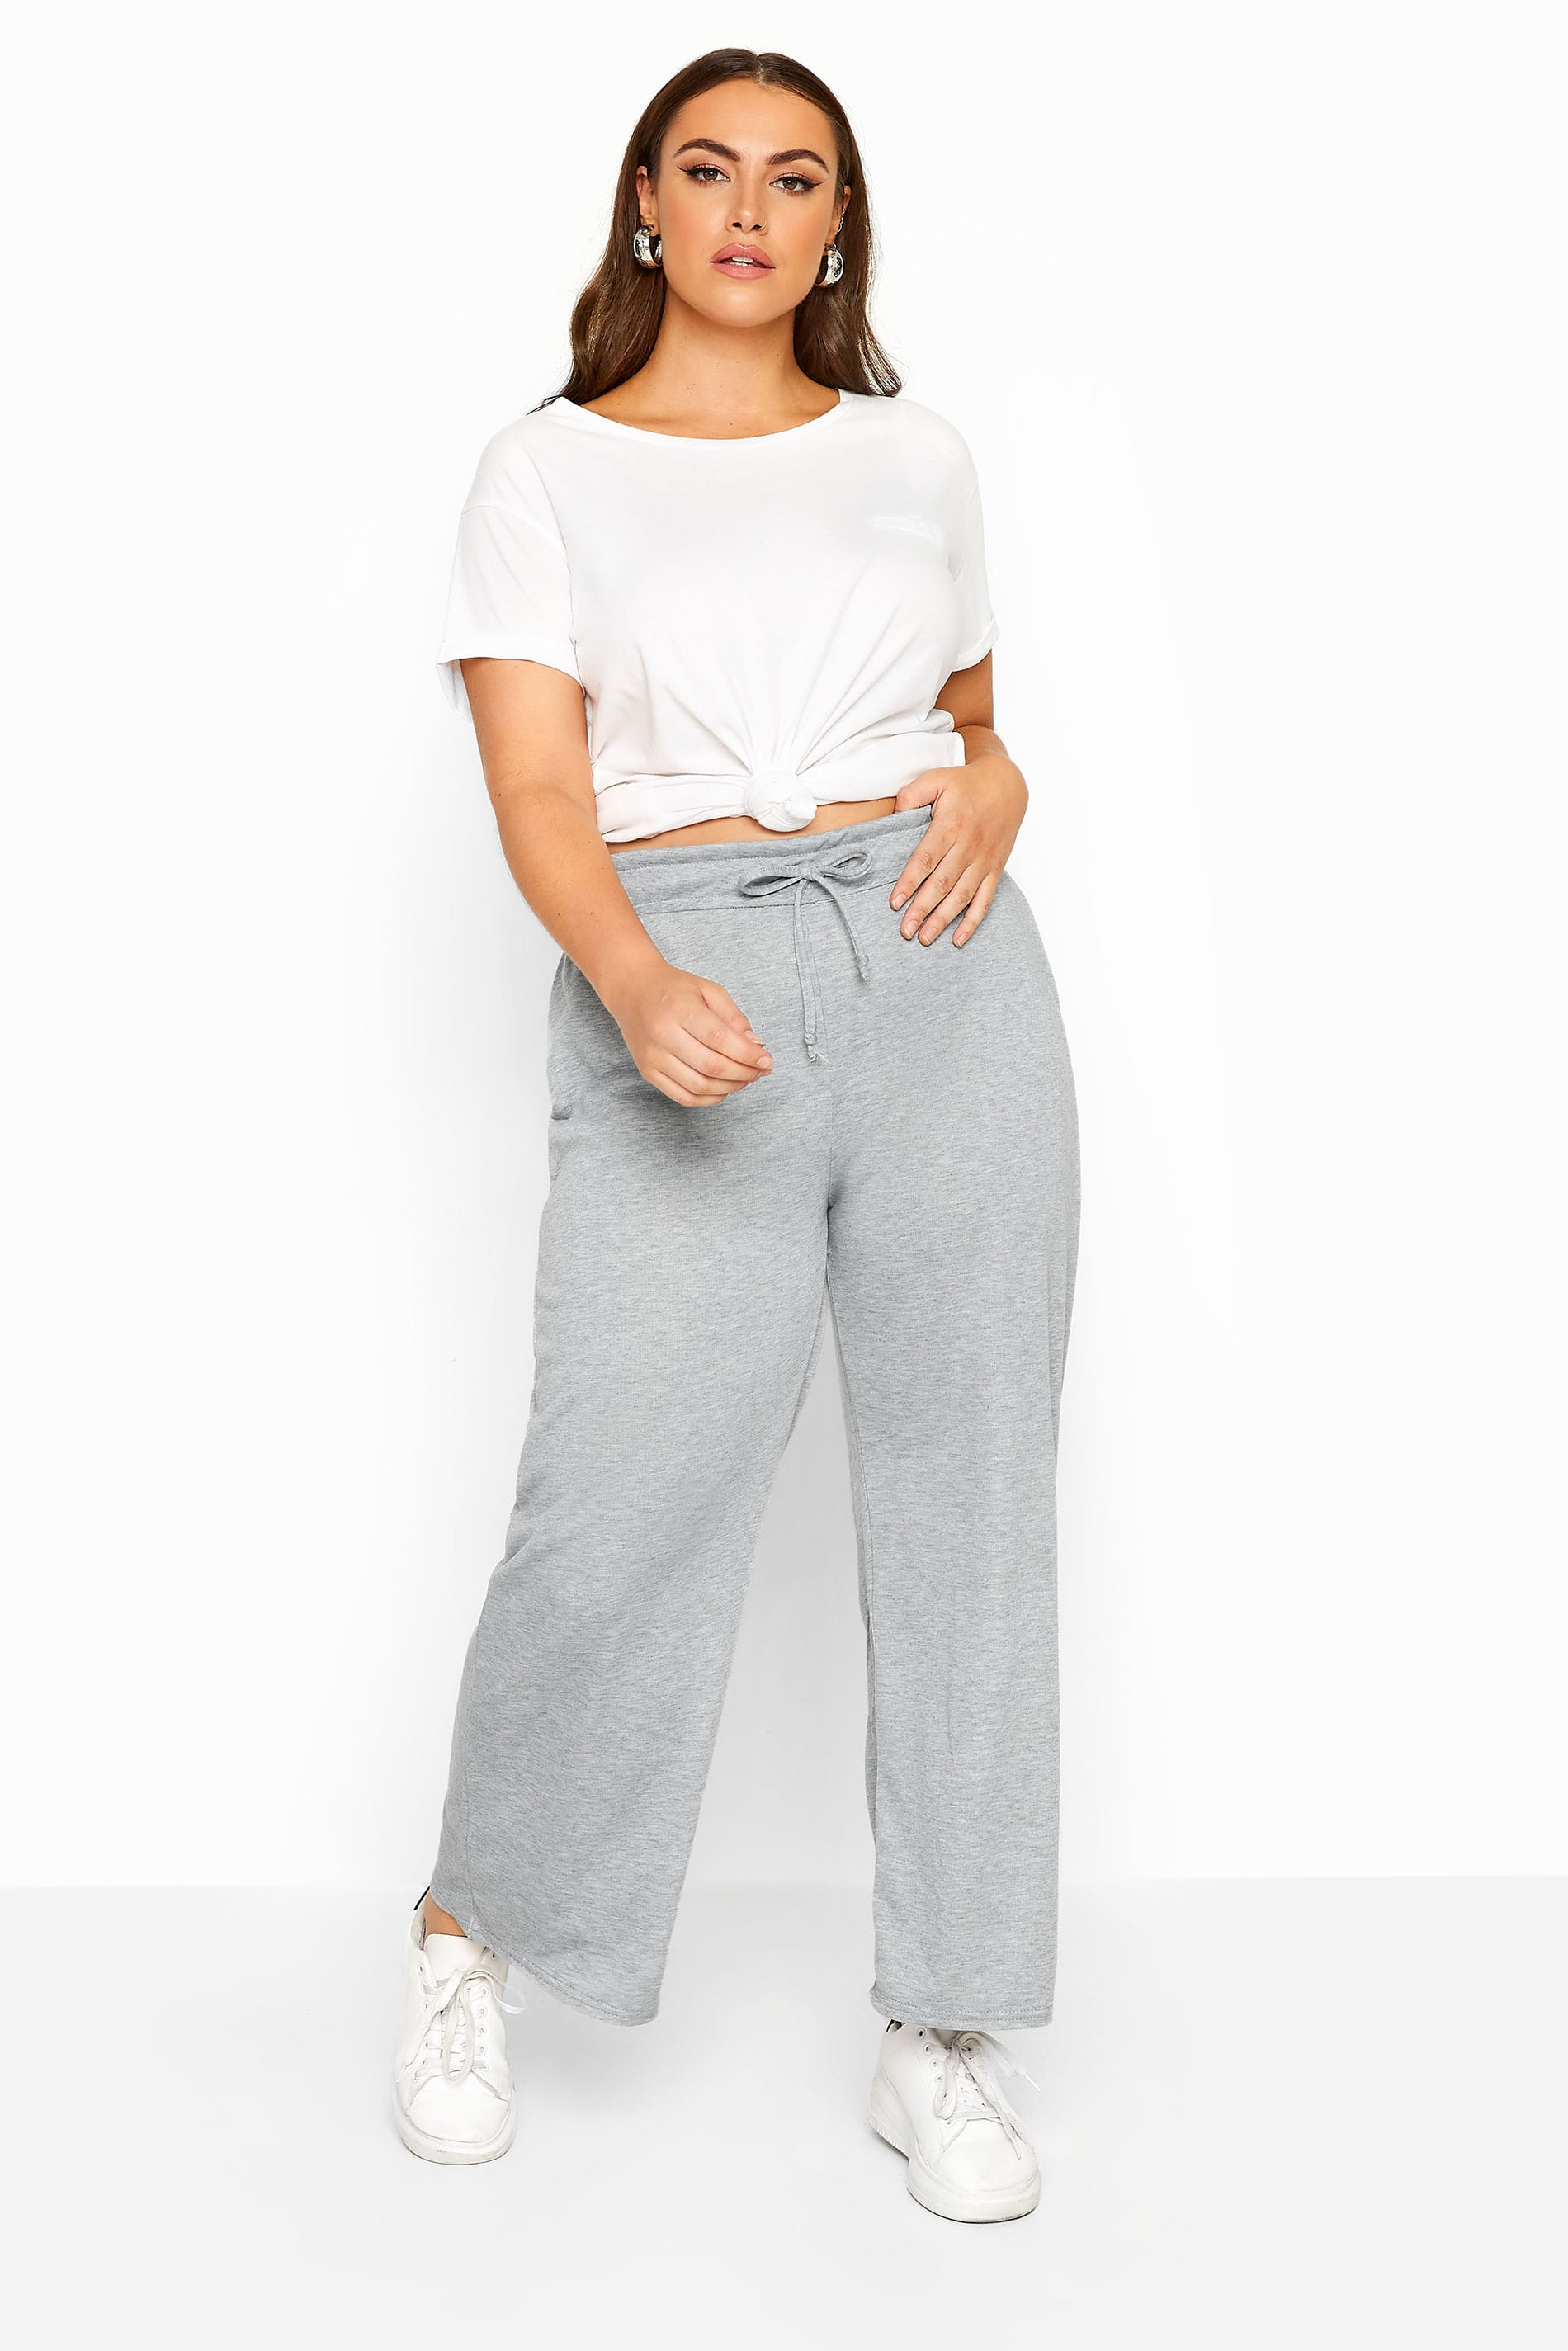 LIMITED COLLECTION Grey Marl Wide Leg Joggers